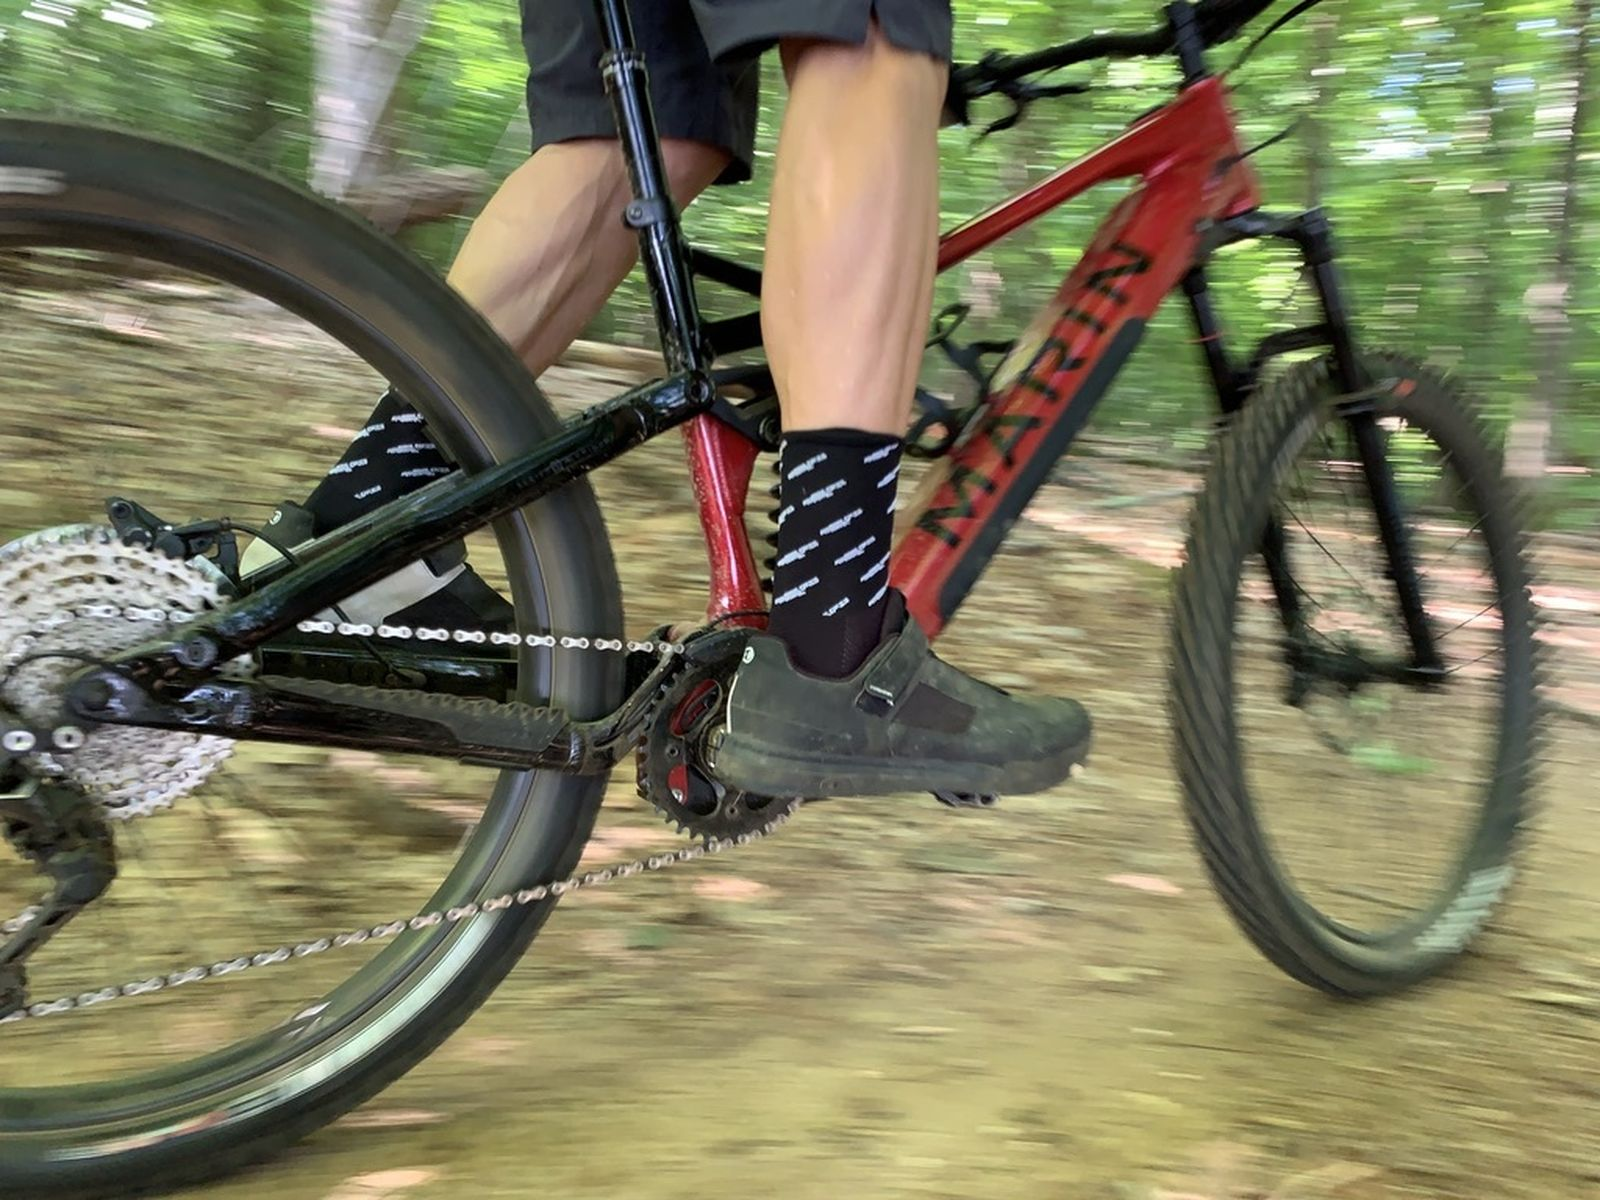 Best MTB shoe for Enduro: Crank Brothers Mallet